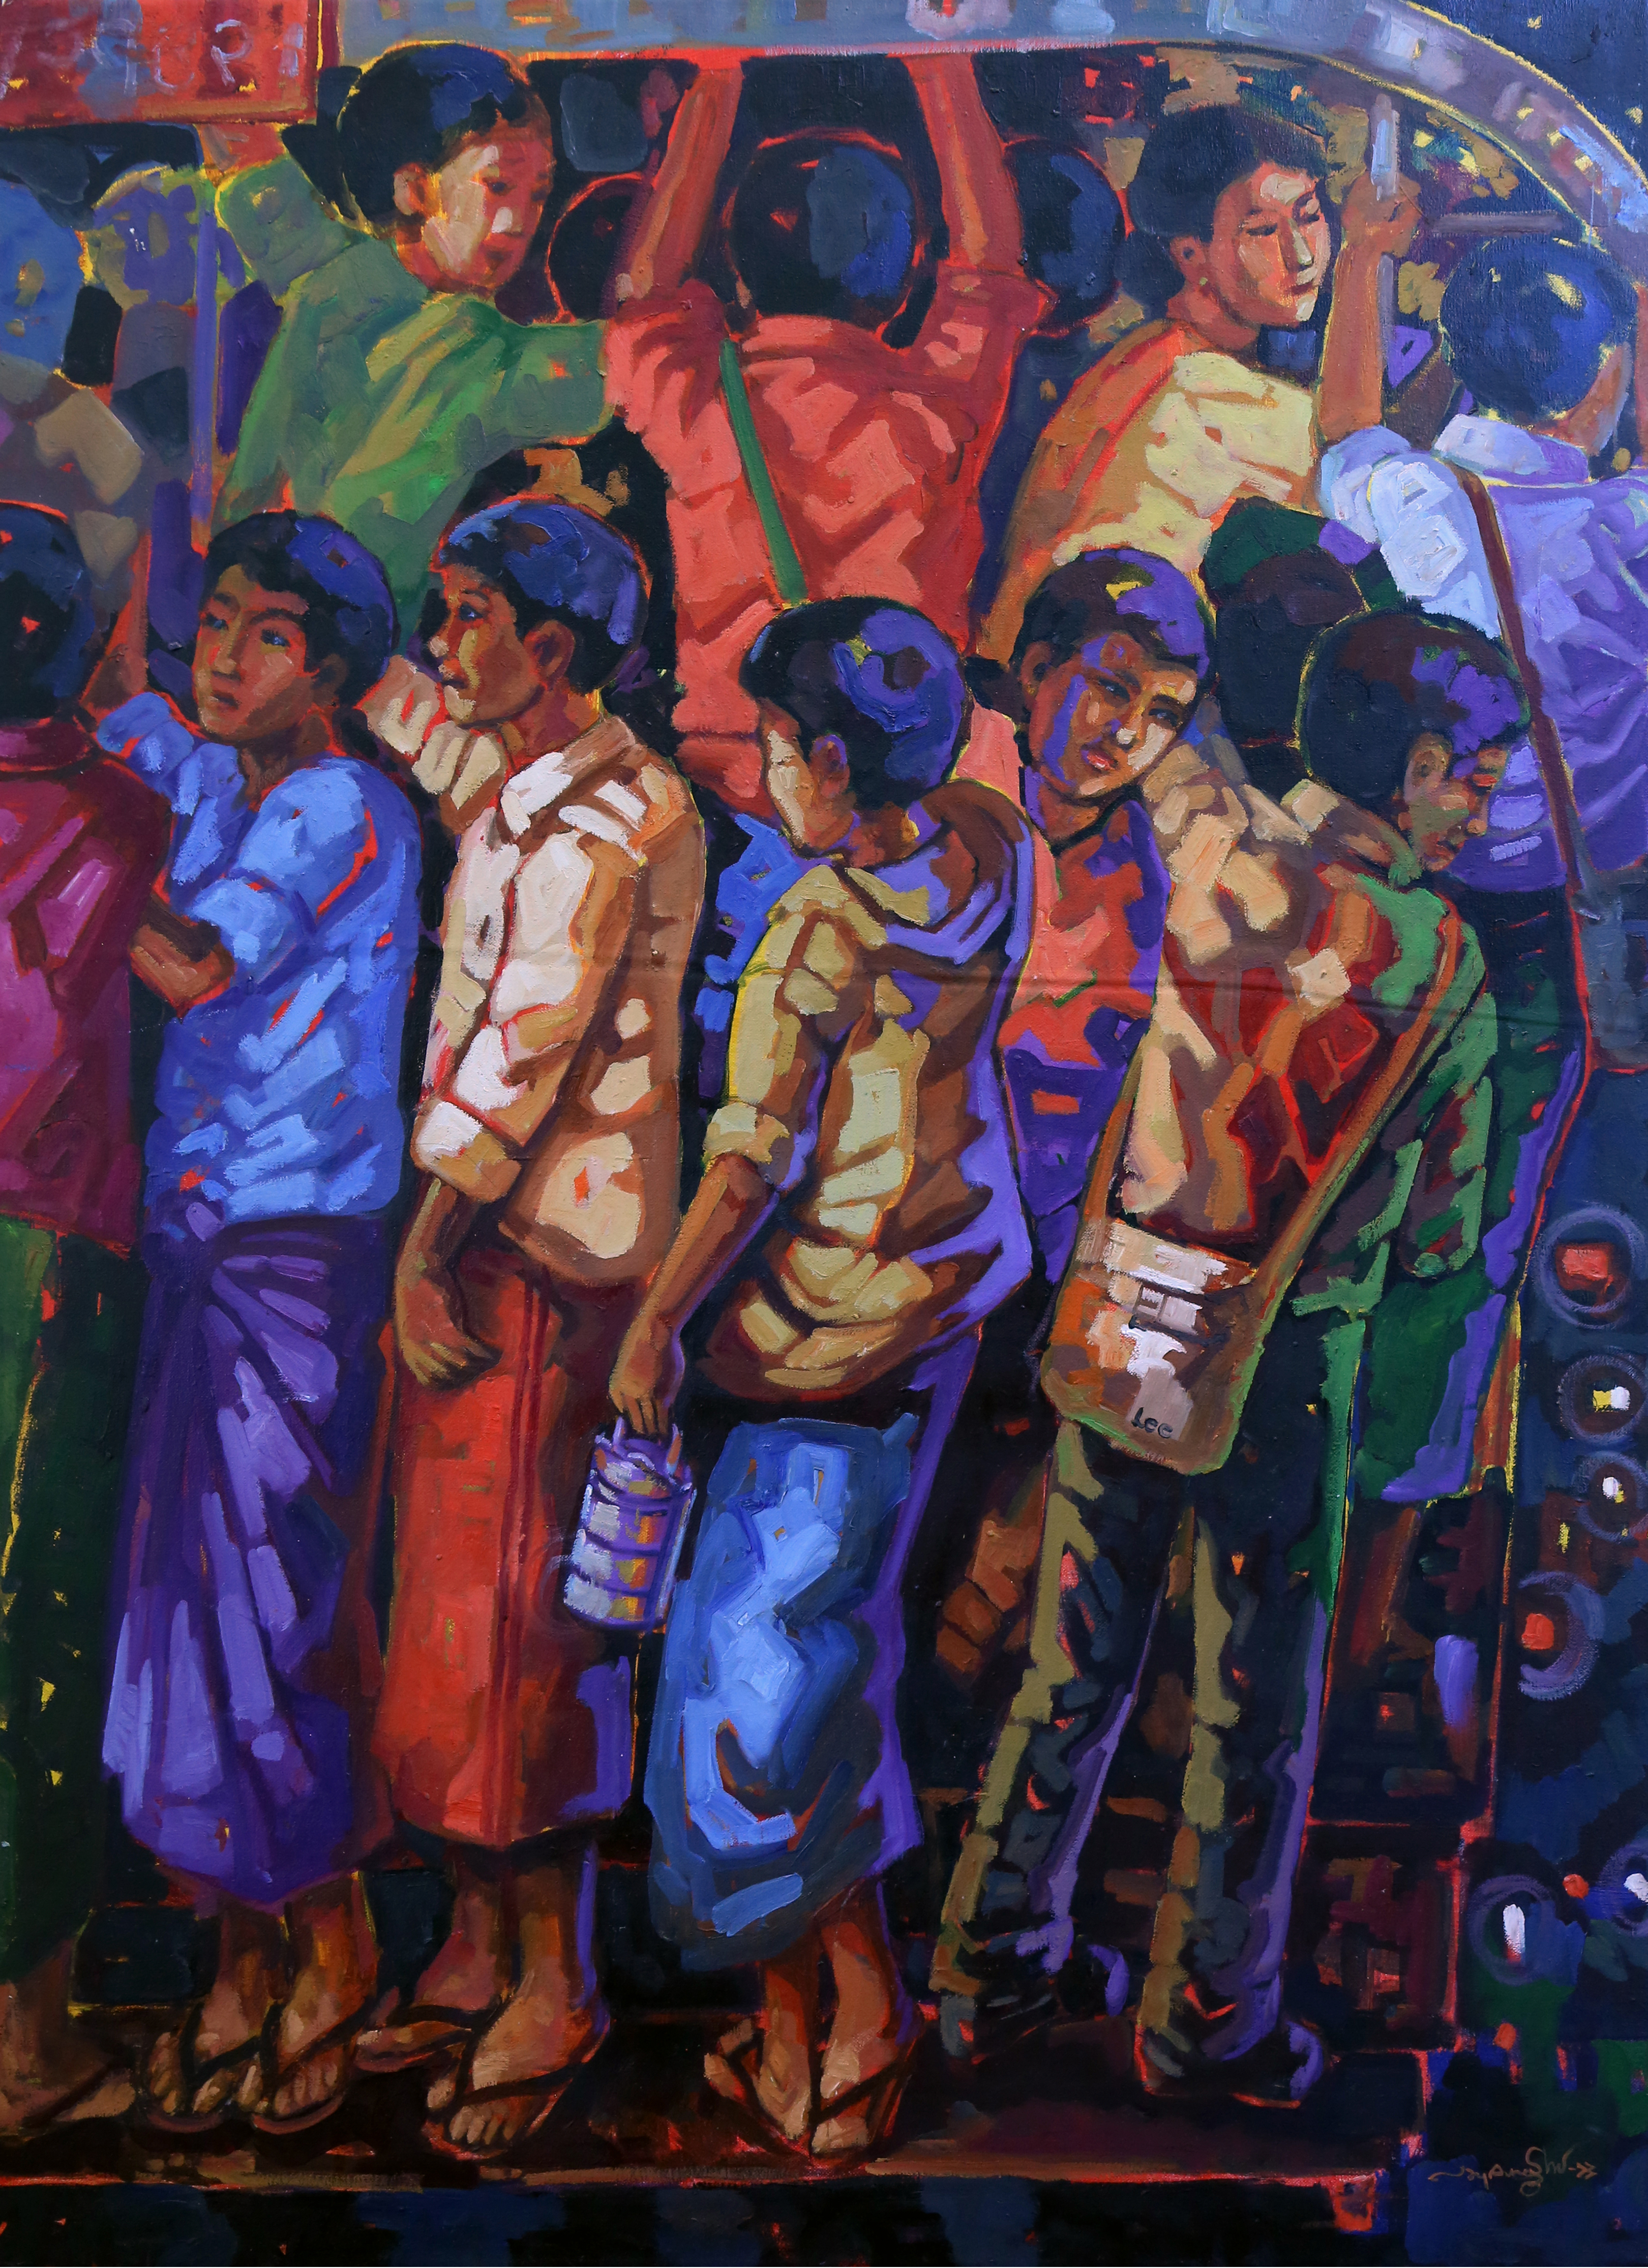 Altered State: Painting Myanmar In A Time Of Transition